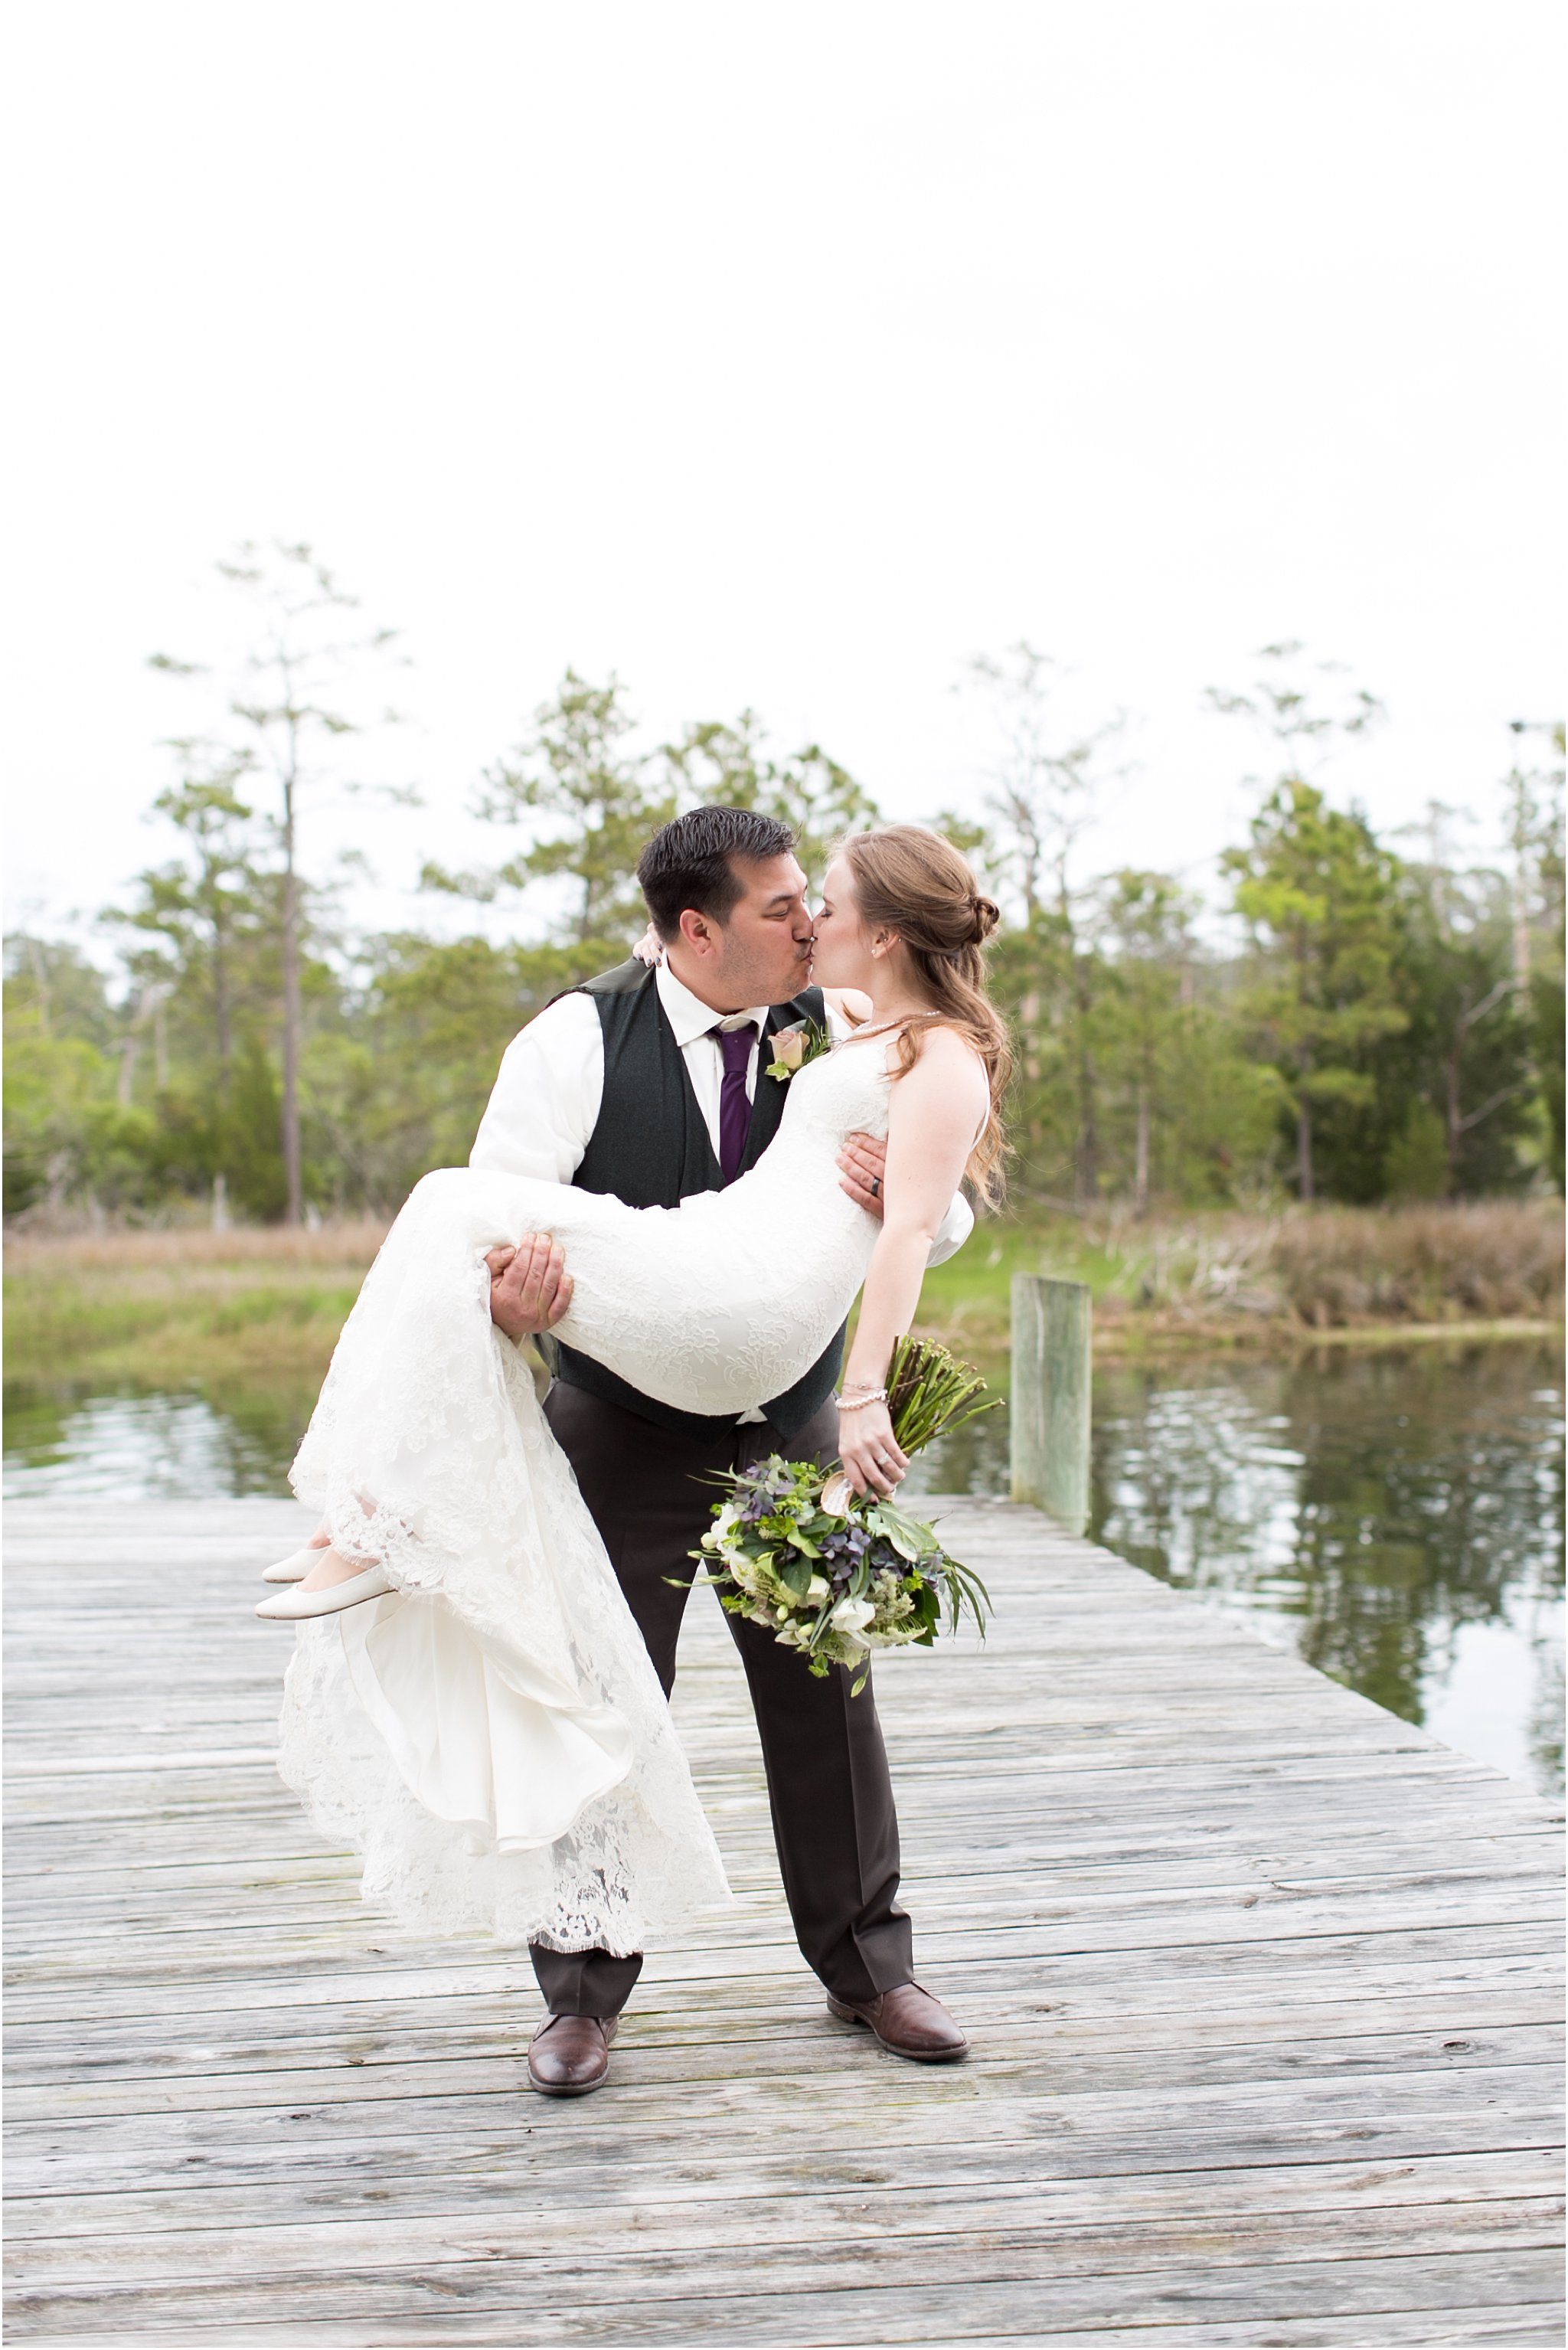 jessica_ryan_photography_virginia_virginiabeachwedding_bayislandvirginiabeach_backyardwedding_waterfrontwedding_intimatewedding_vintagewedding_1565